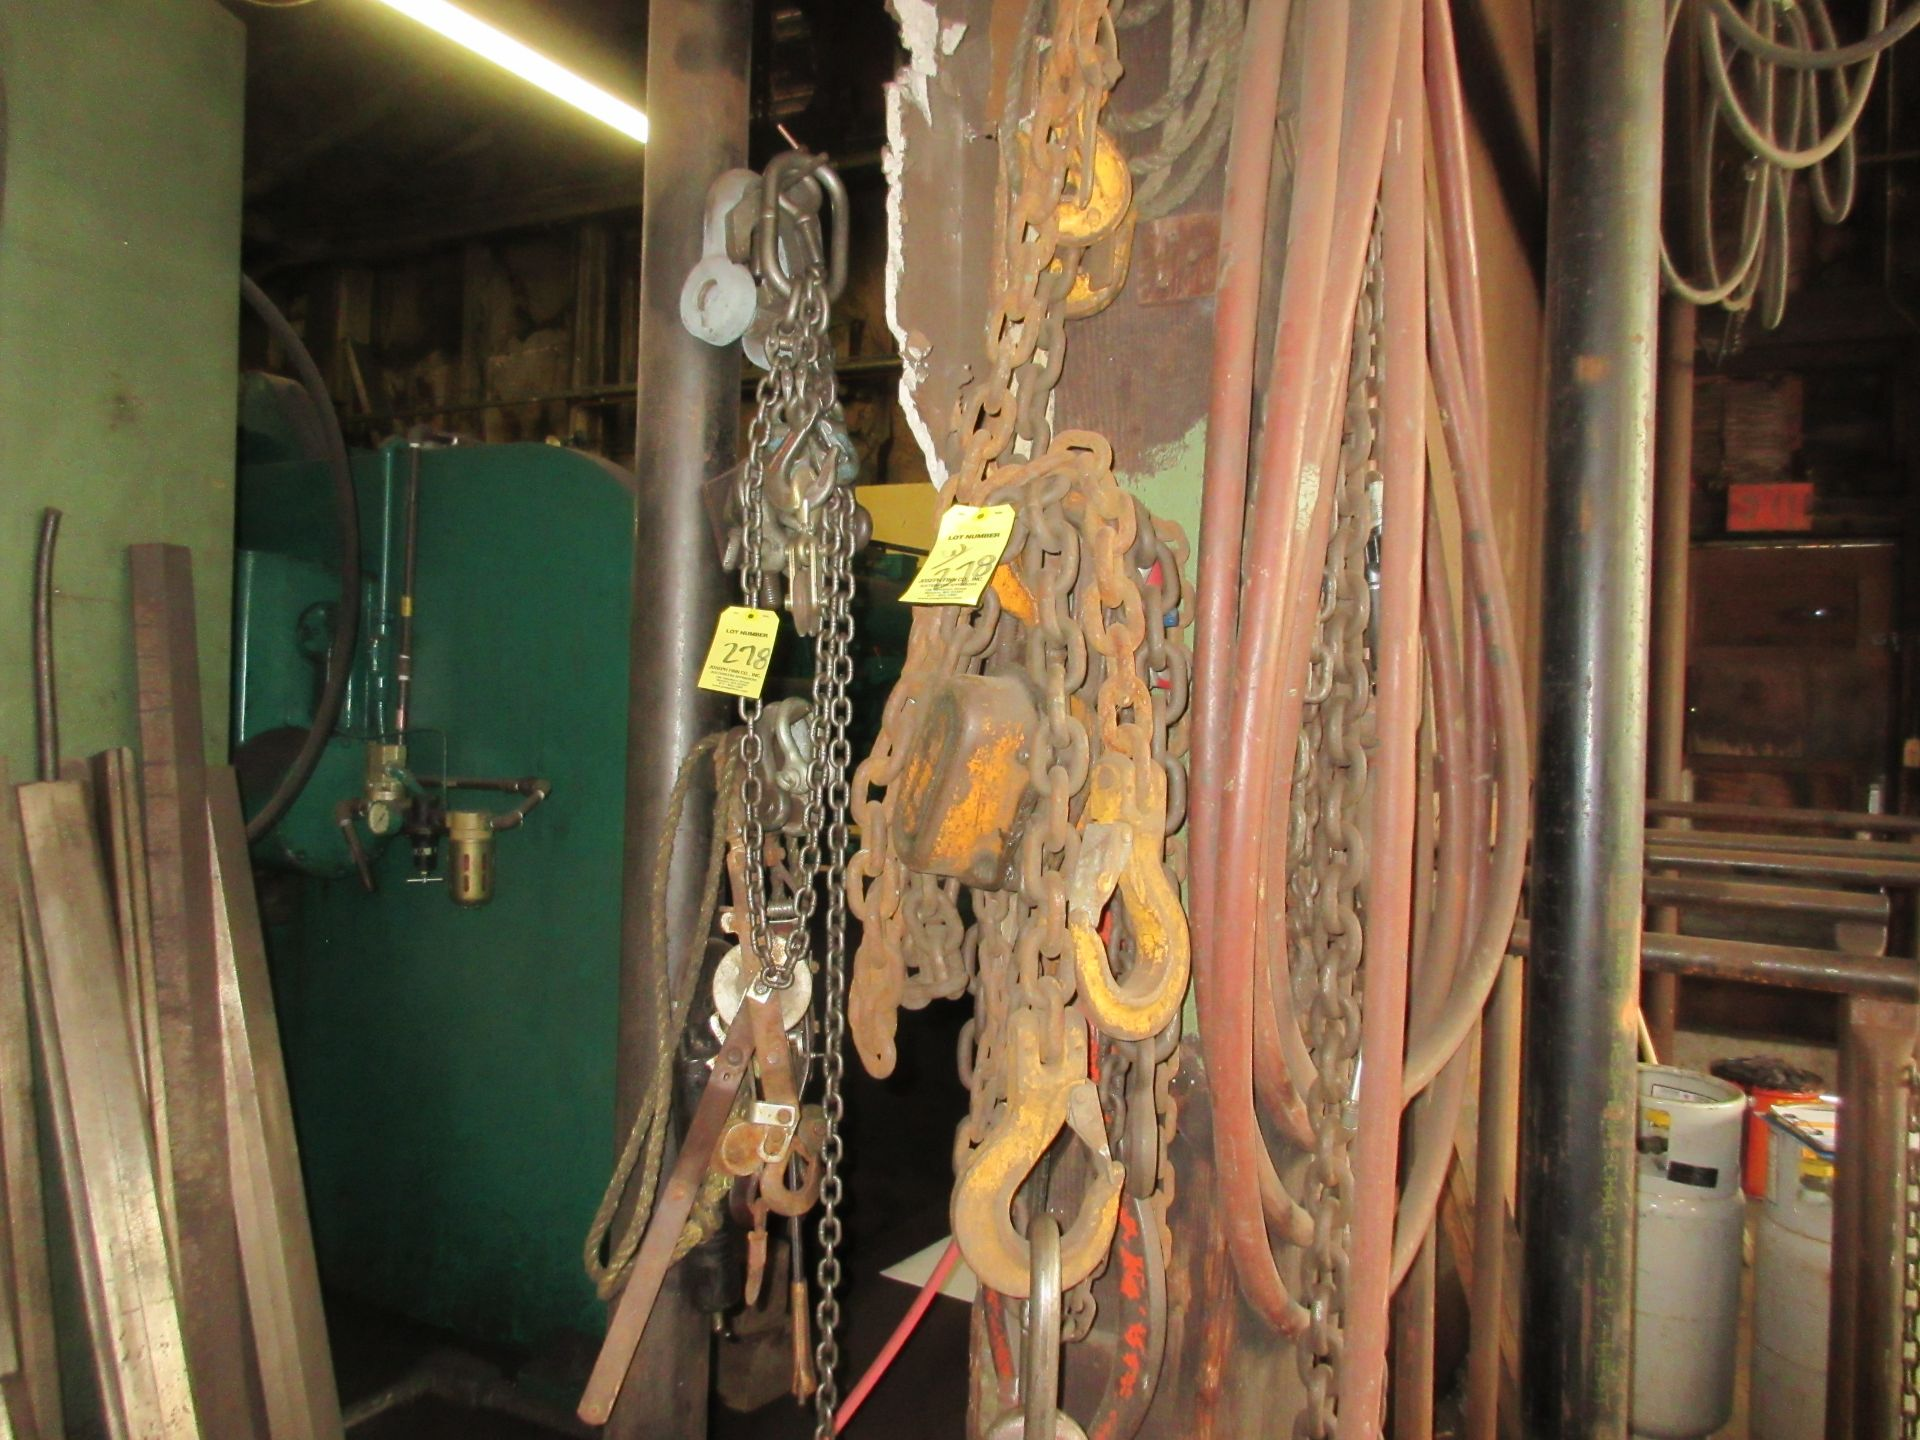 LOT Asst. Chains, Hooks, Slings on Wall - Image 2 of 2